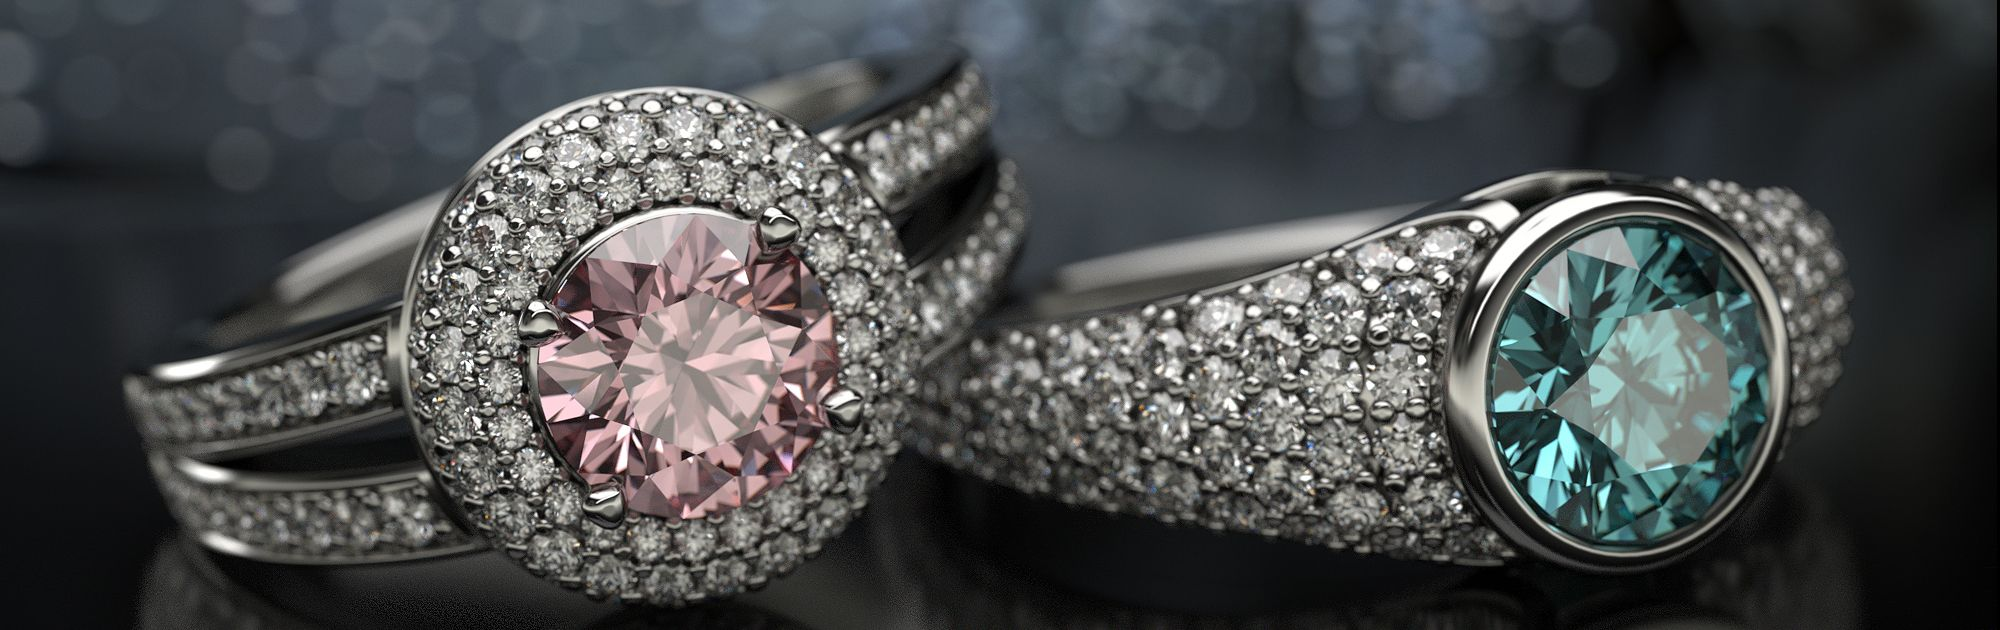 @JeweliveUK Creating web banners that enhance online visual experience #3d #jewelry #marketing